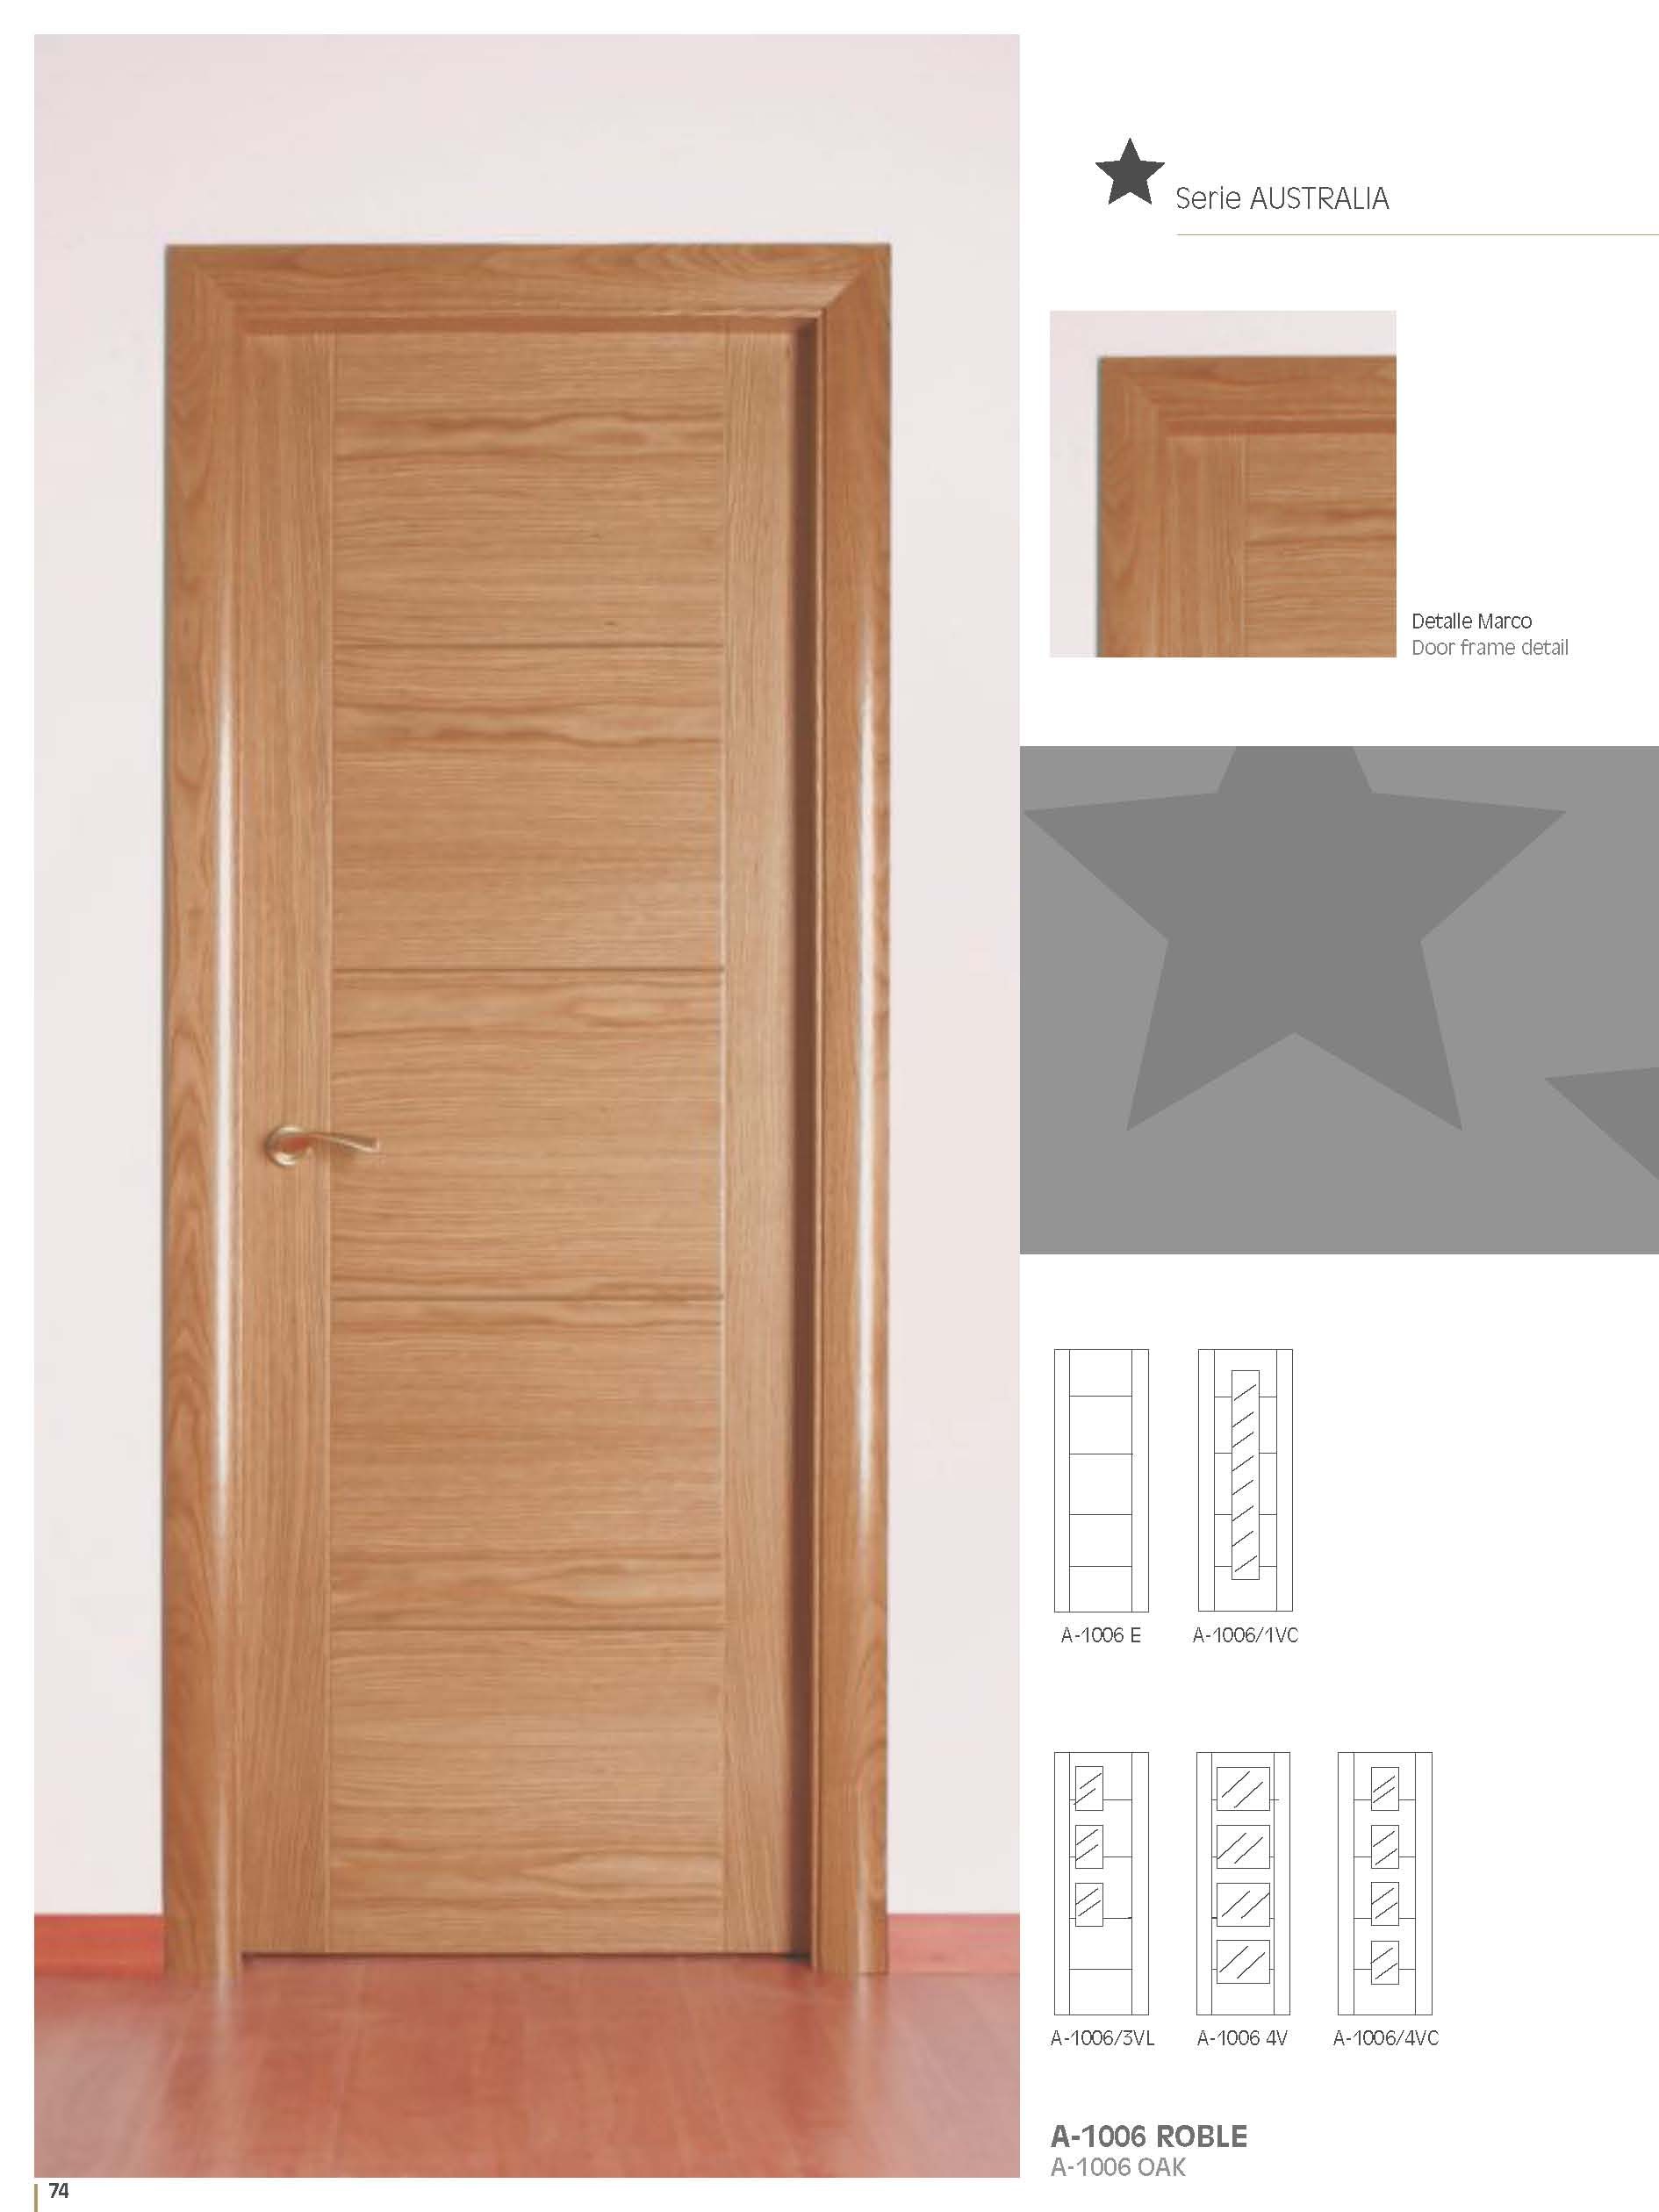 kit doors insulation garage choices door shutterstock right one top inside the choose